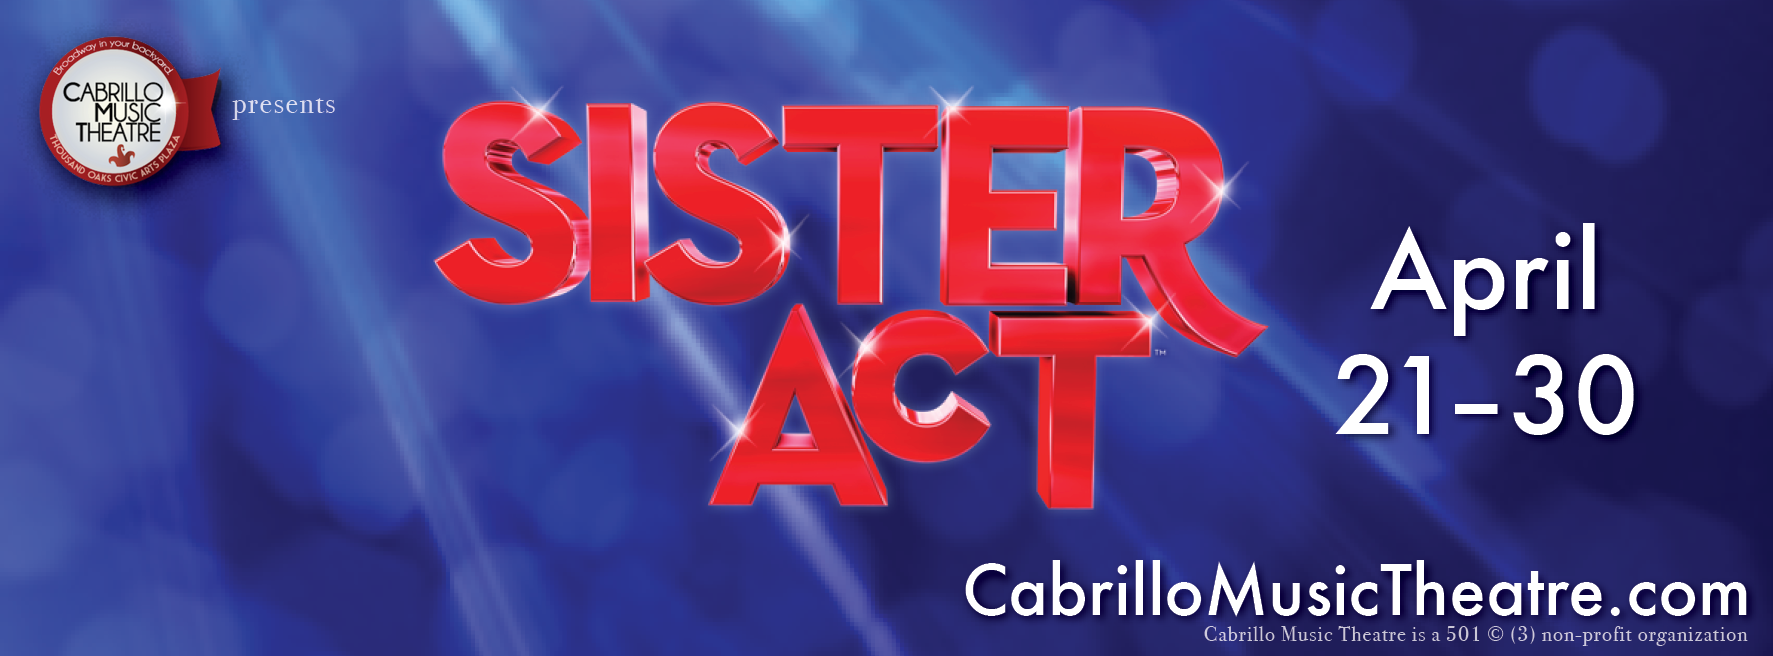 Sister Act Facebook Cover Image